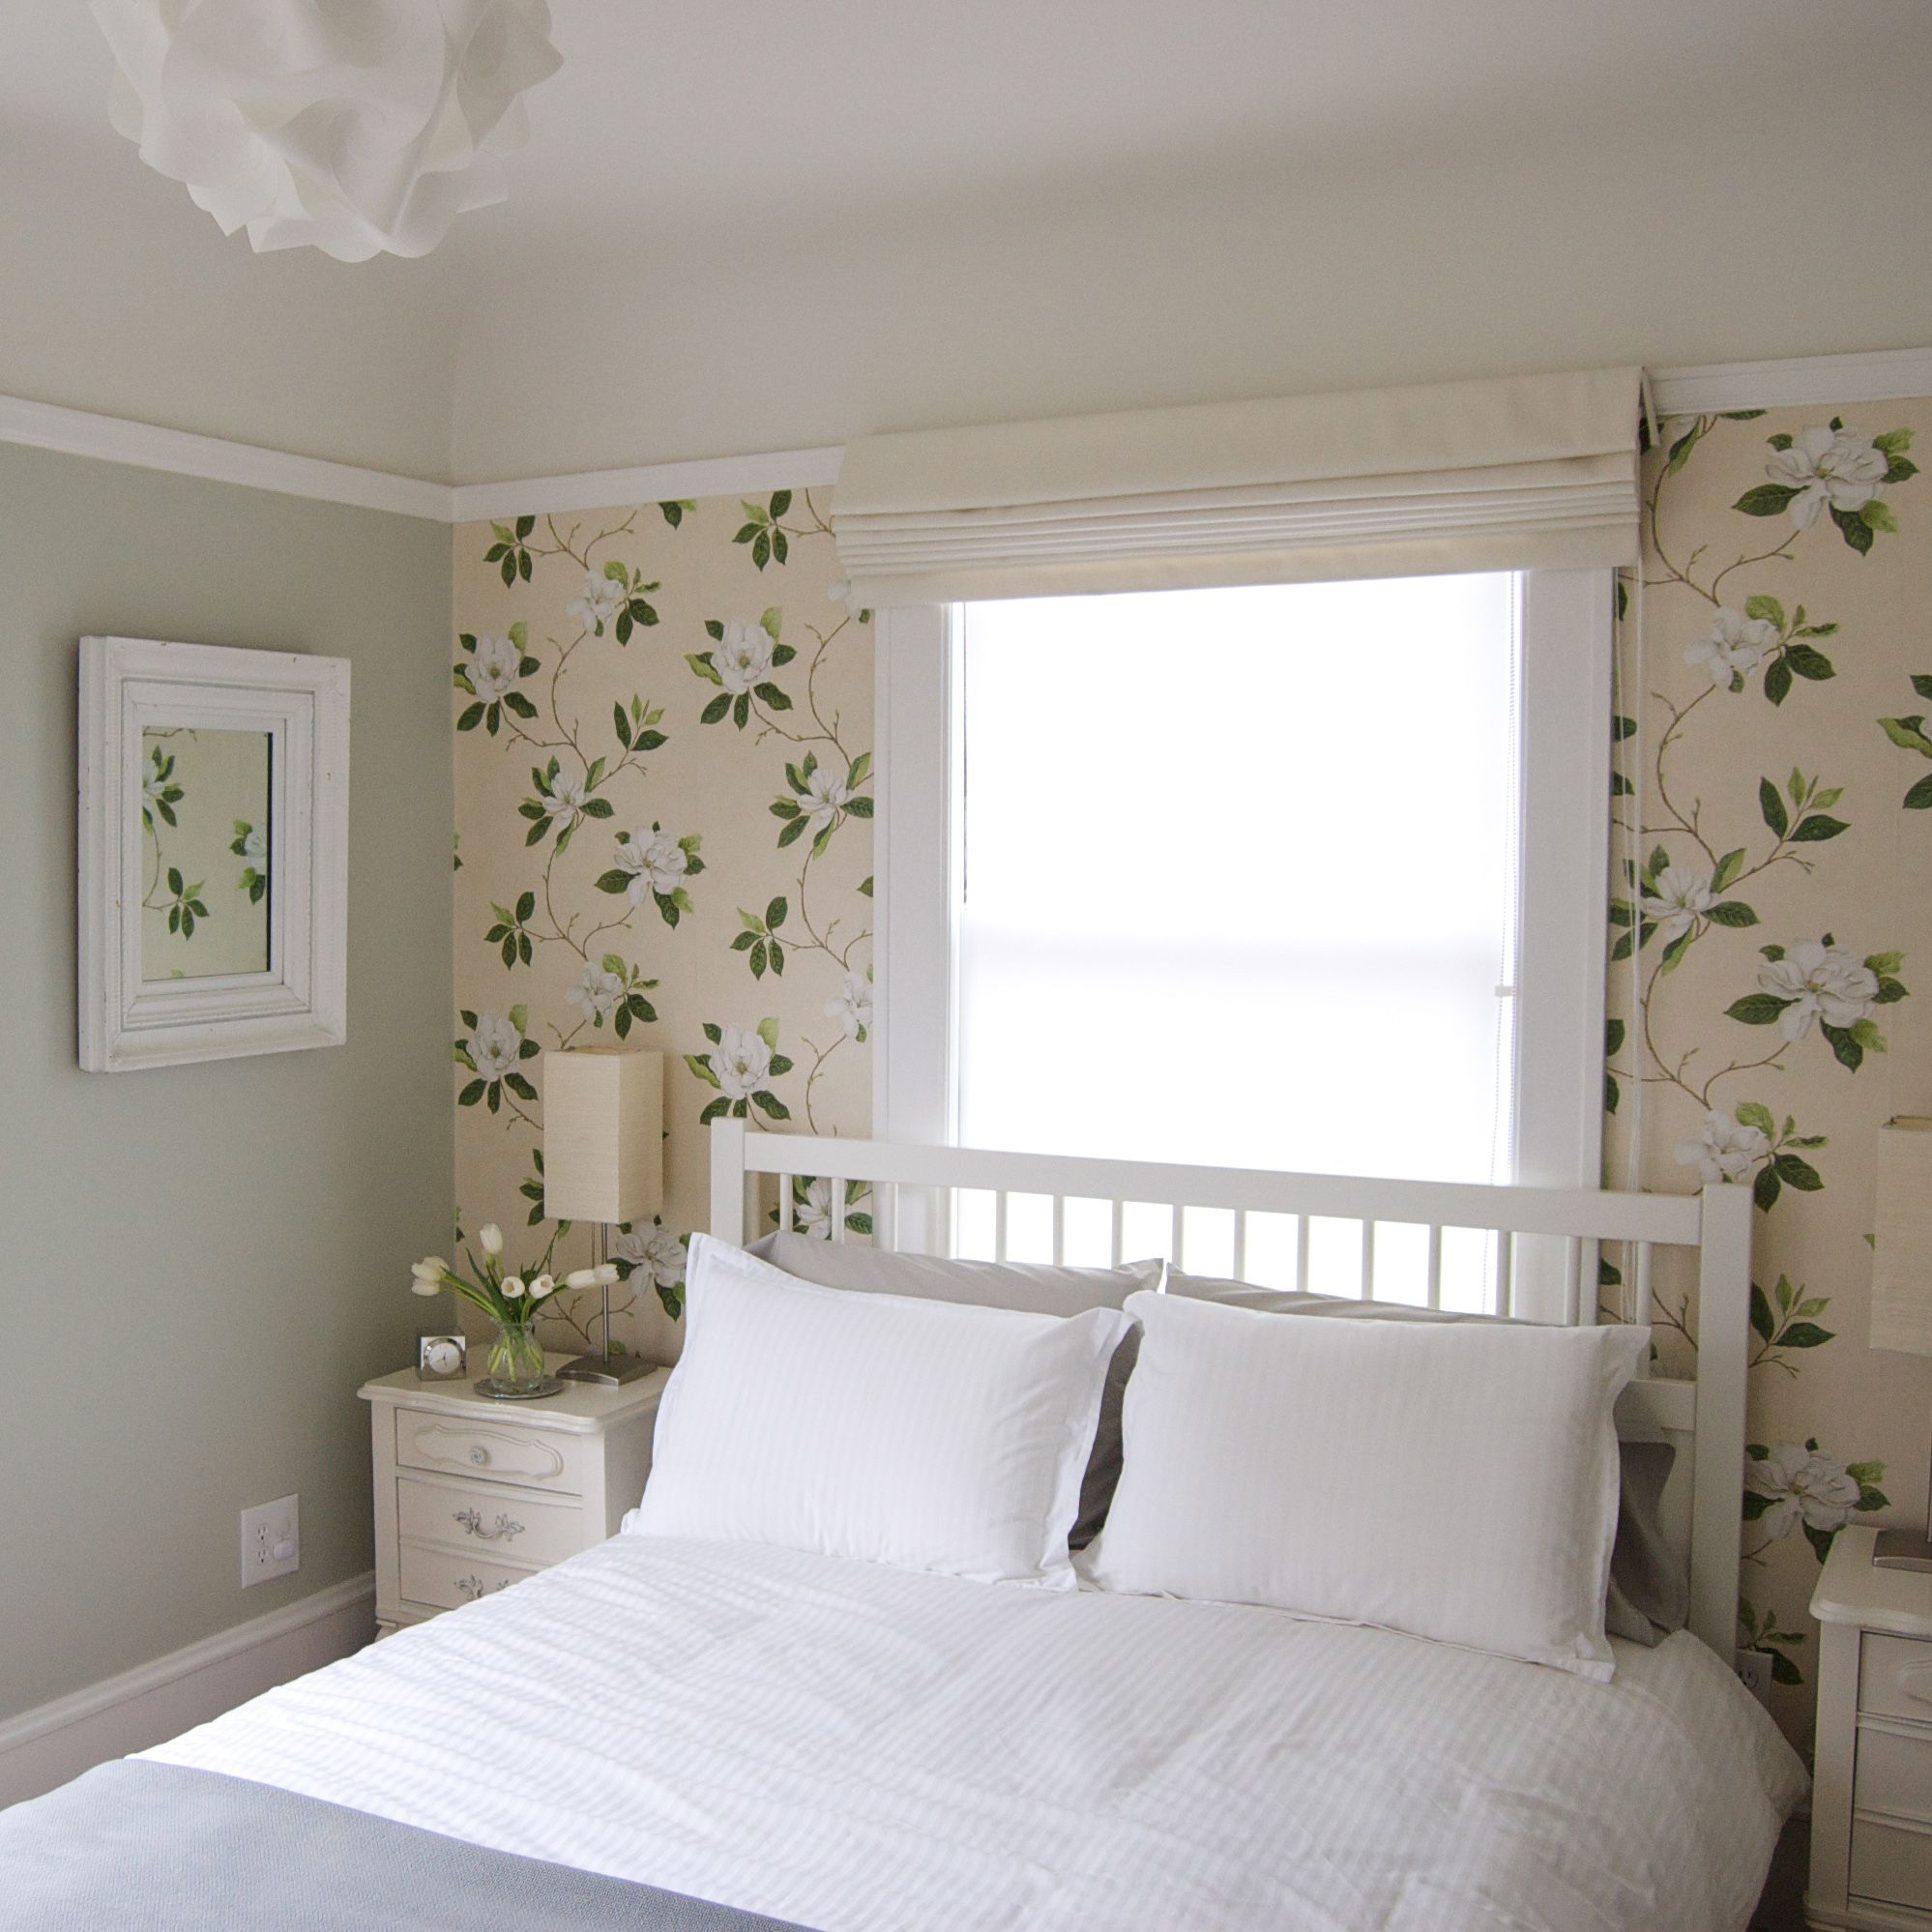 Bedroom Window Design Ideas Bedroom Wallpaper Pic Bedroom Furniture Ideas Superhero Bedroom Wallpaper: Обои в цветок в интерьере (50 фото): романтика природы в